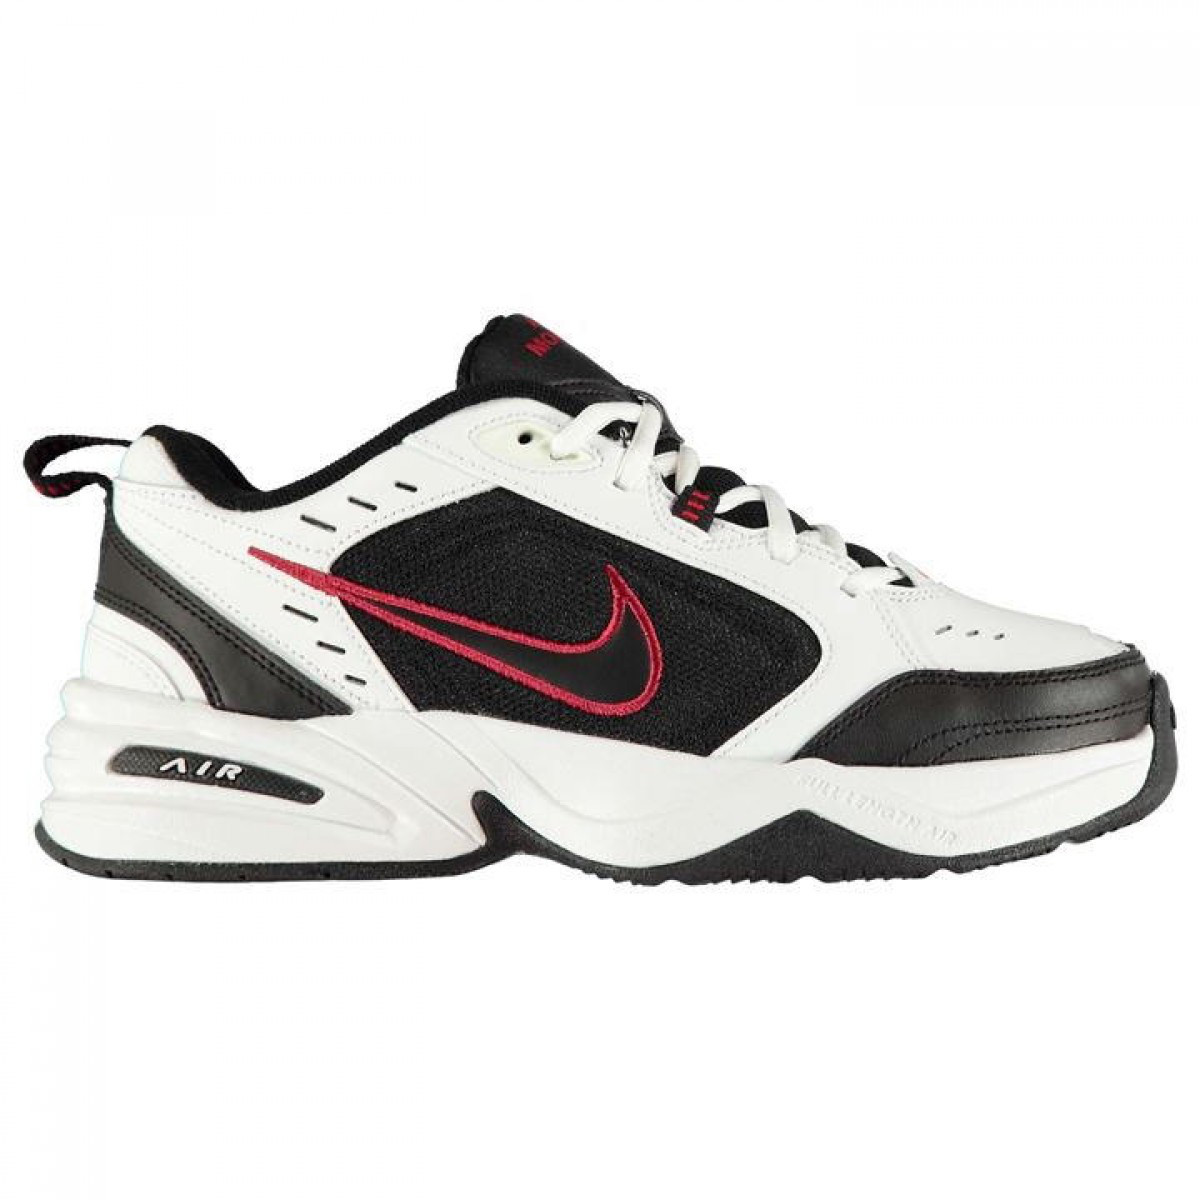 6fa758a7115c Кроссовки Nike Air Monarch White Black Red - Оригинал — в Категории ...